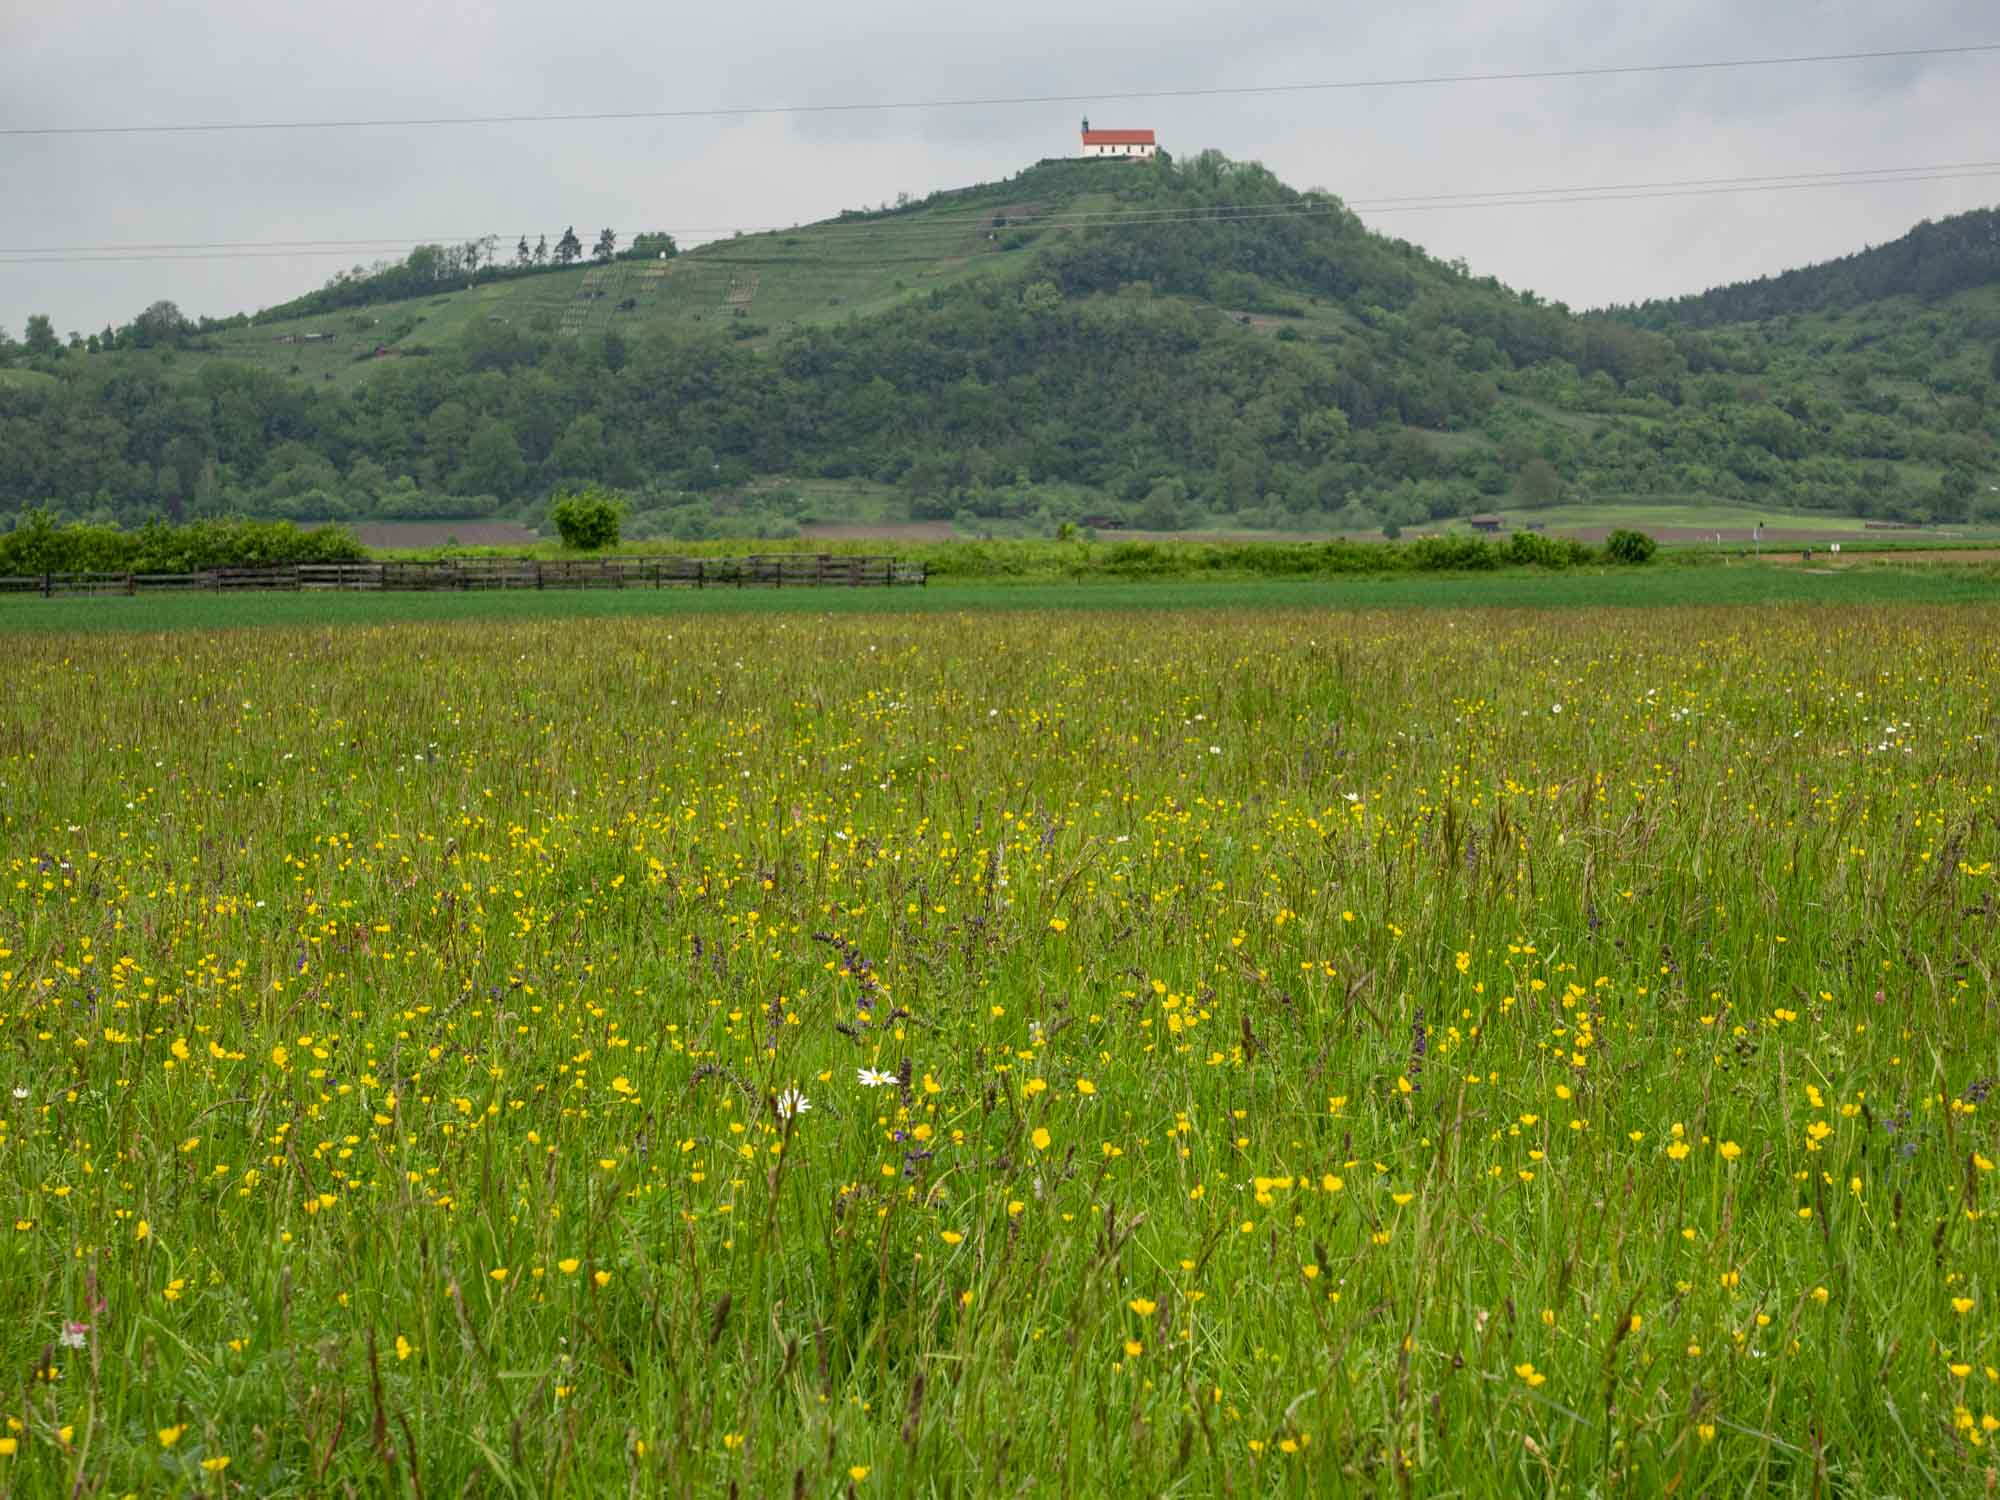 The fields show a high diversity of native vegetation. The building in the distance is Würmlingen Chapel.